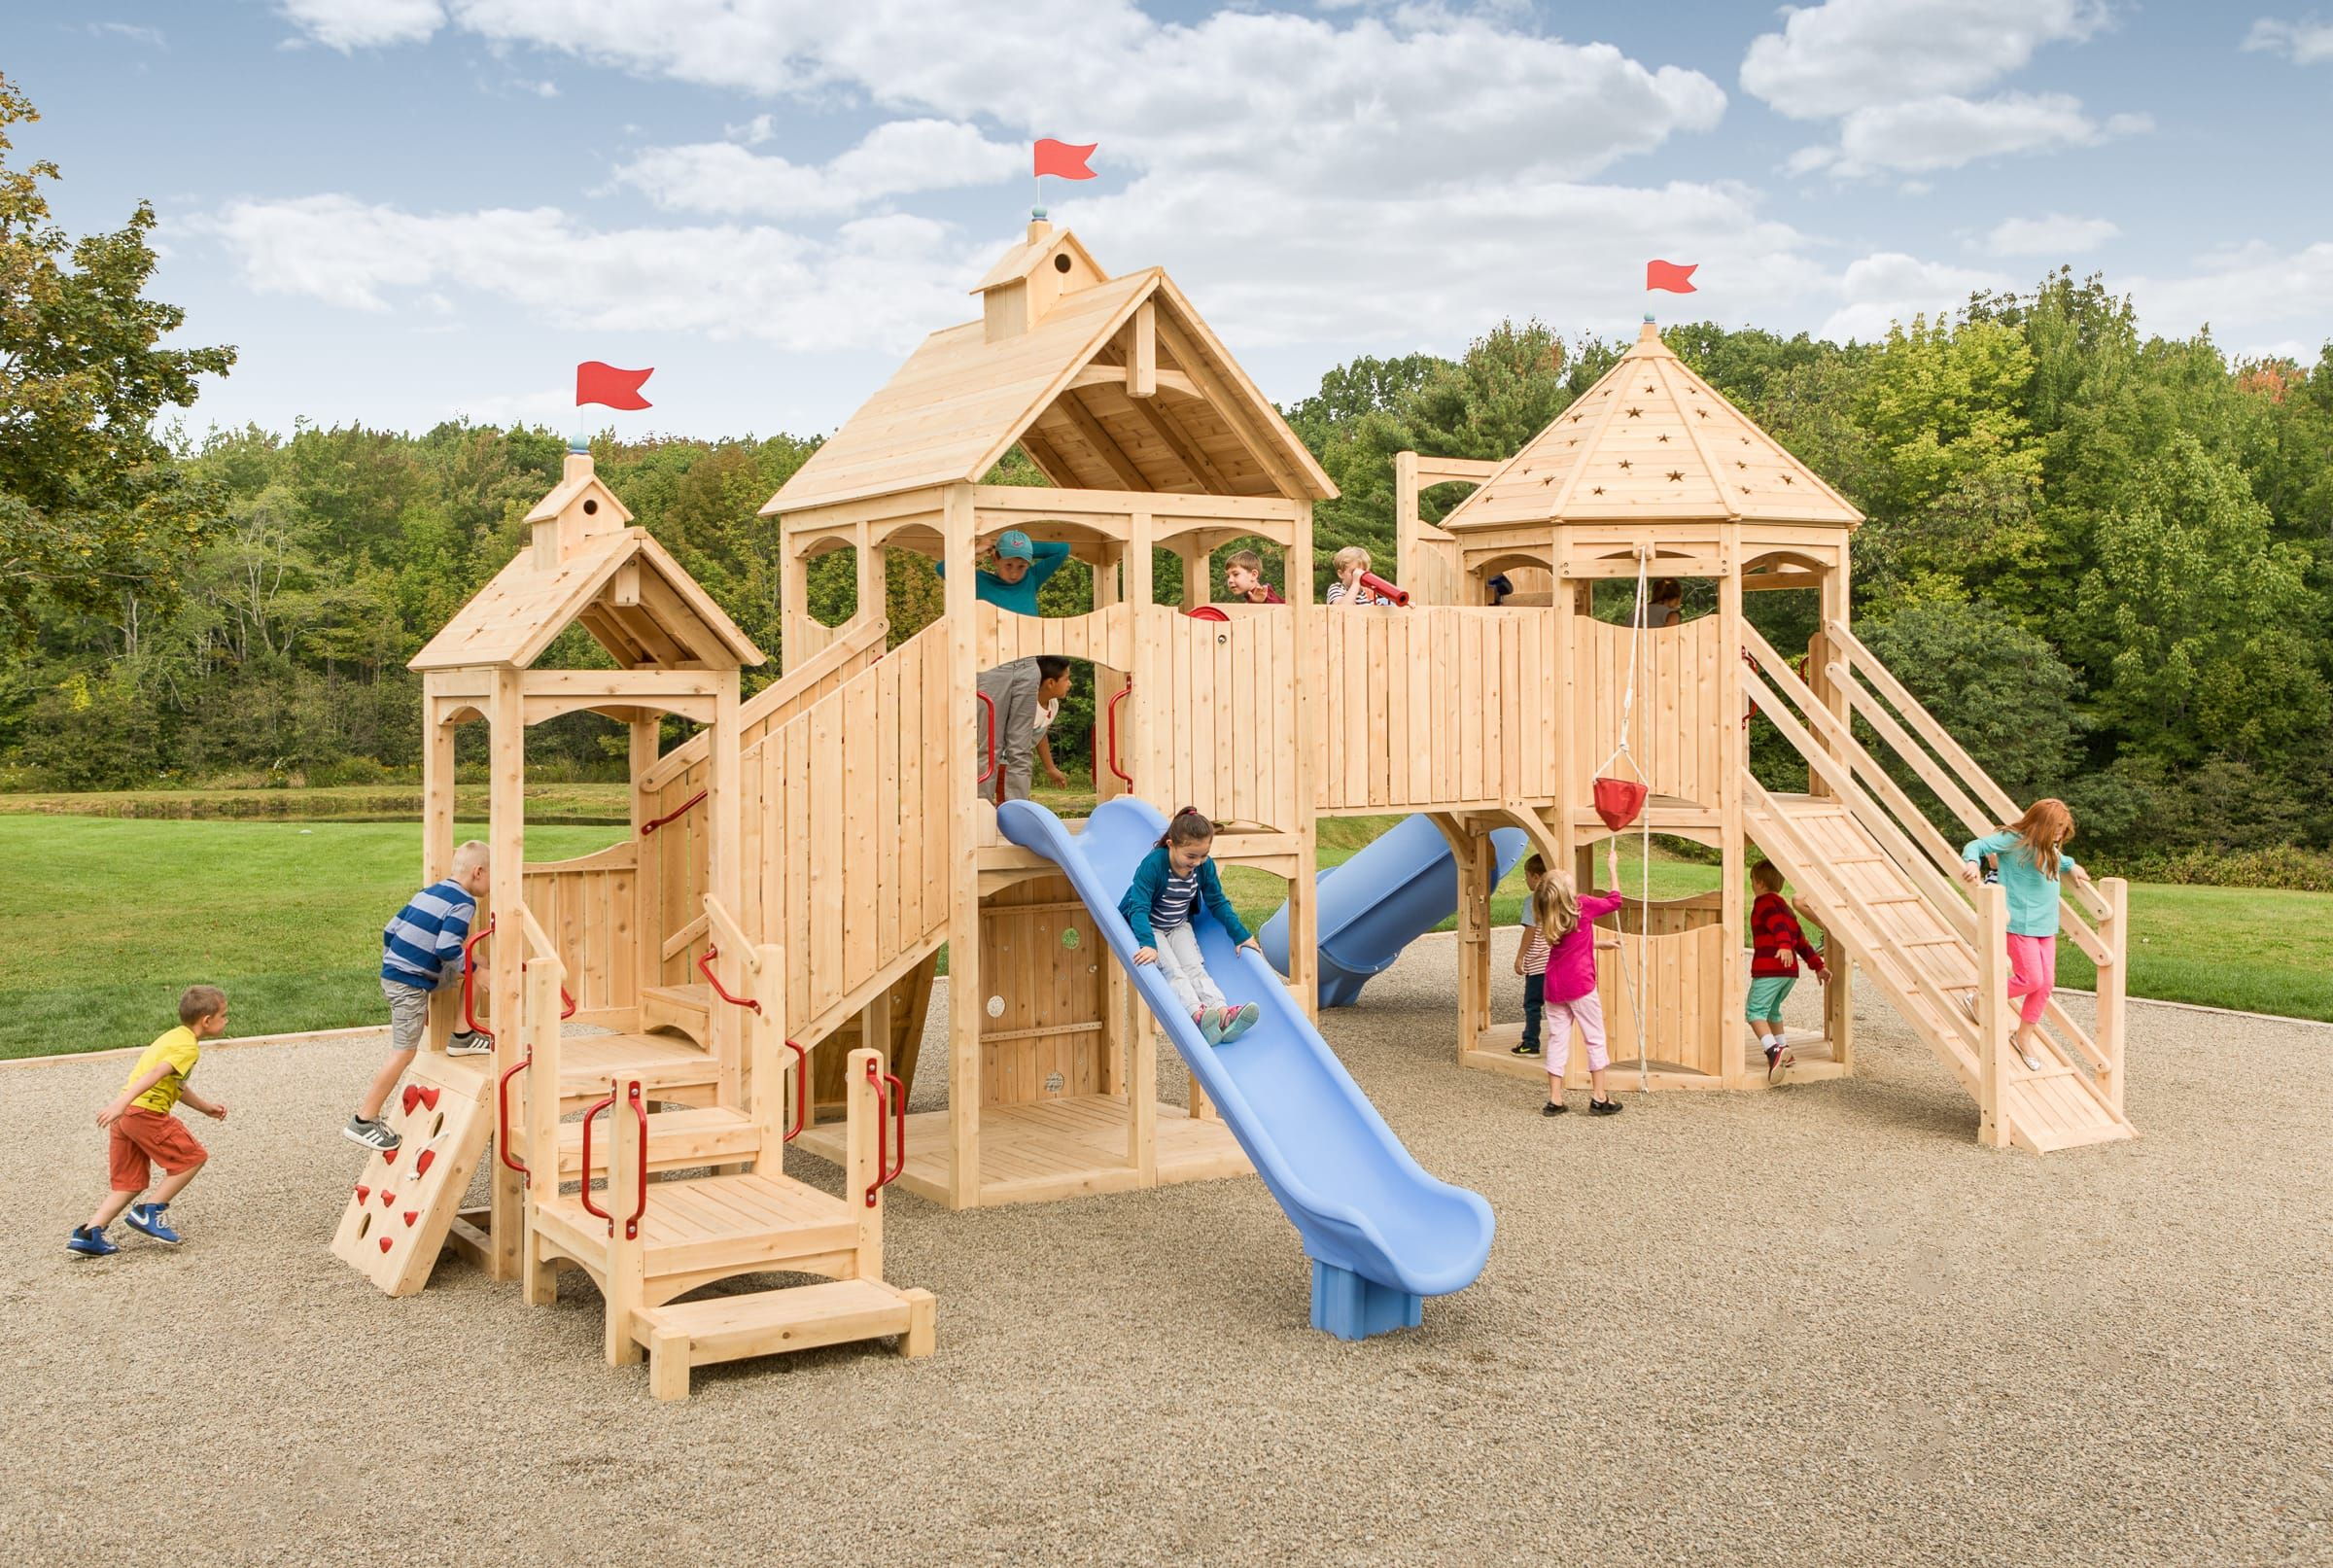 Commercial Outdoor 430 Cedarworks Playsets Playset Outdoor Playground Areas Outdoor Playground